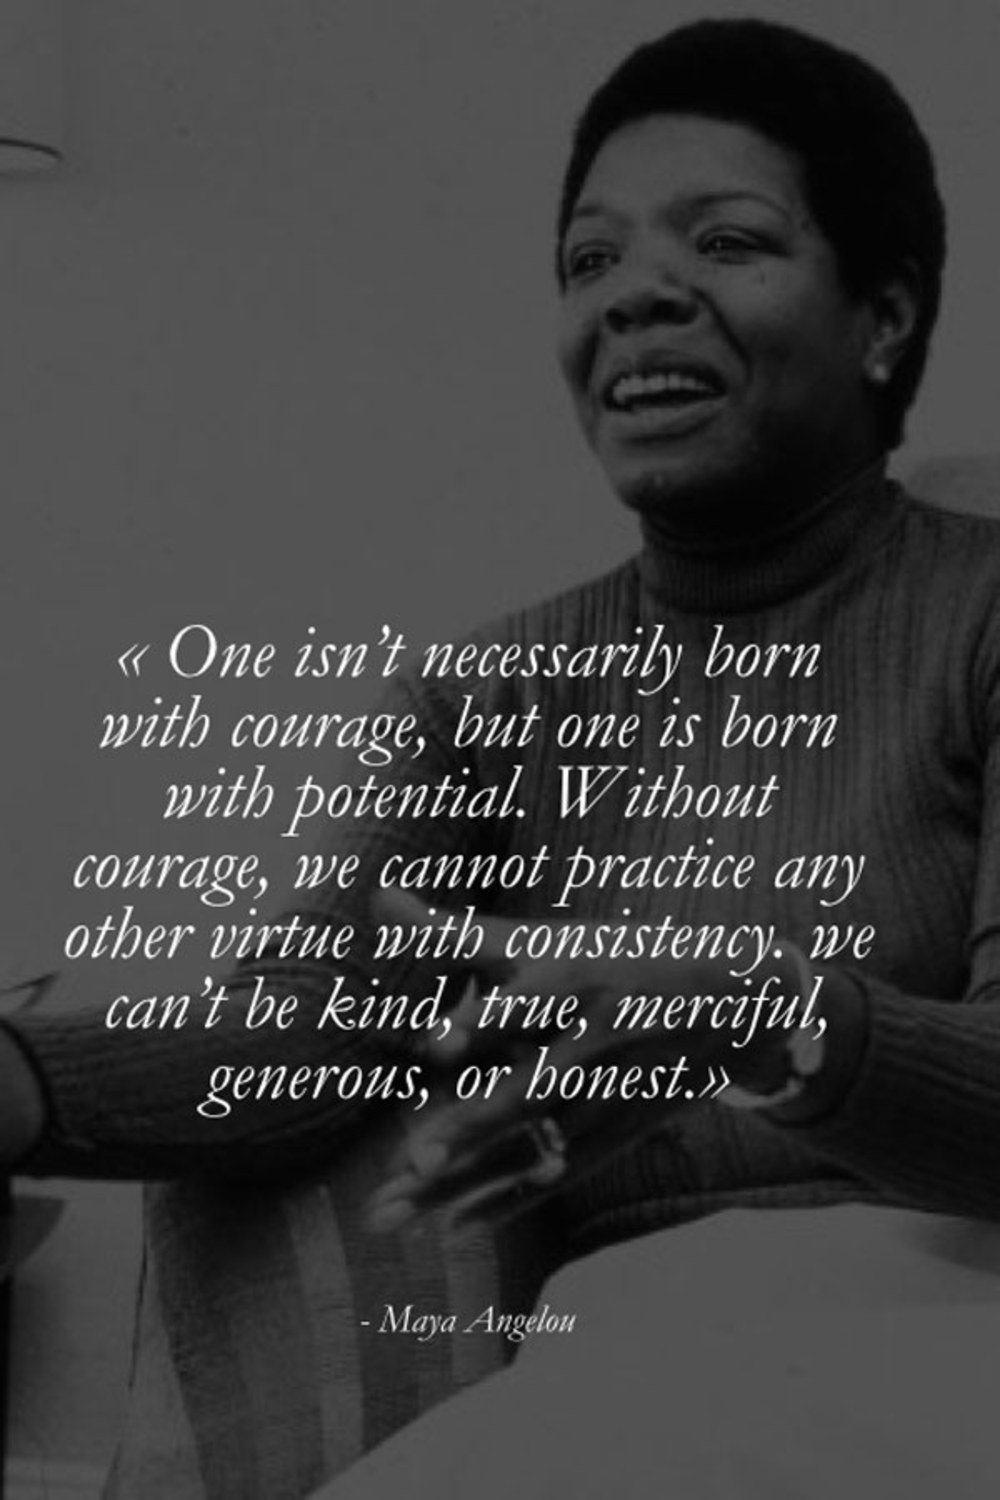 """One isn't necessarily born with coverage, but one is born with potential. Without courage, we cannot practice any other virtue with consistency, we can't be kind, true, merciful, generous, or honest.""   ""If you don't like something, change it. If you can't change it, change your attitude.""   - Maya Angelou"